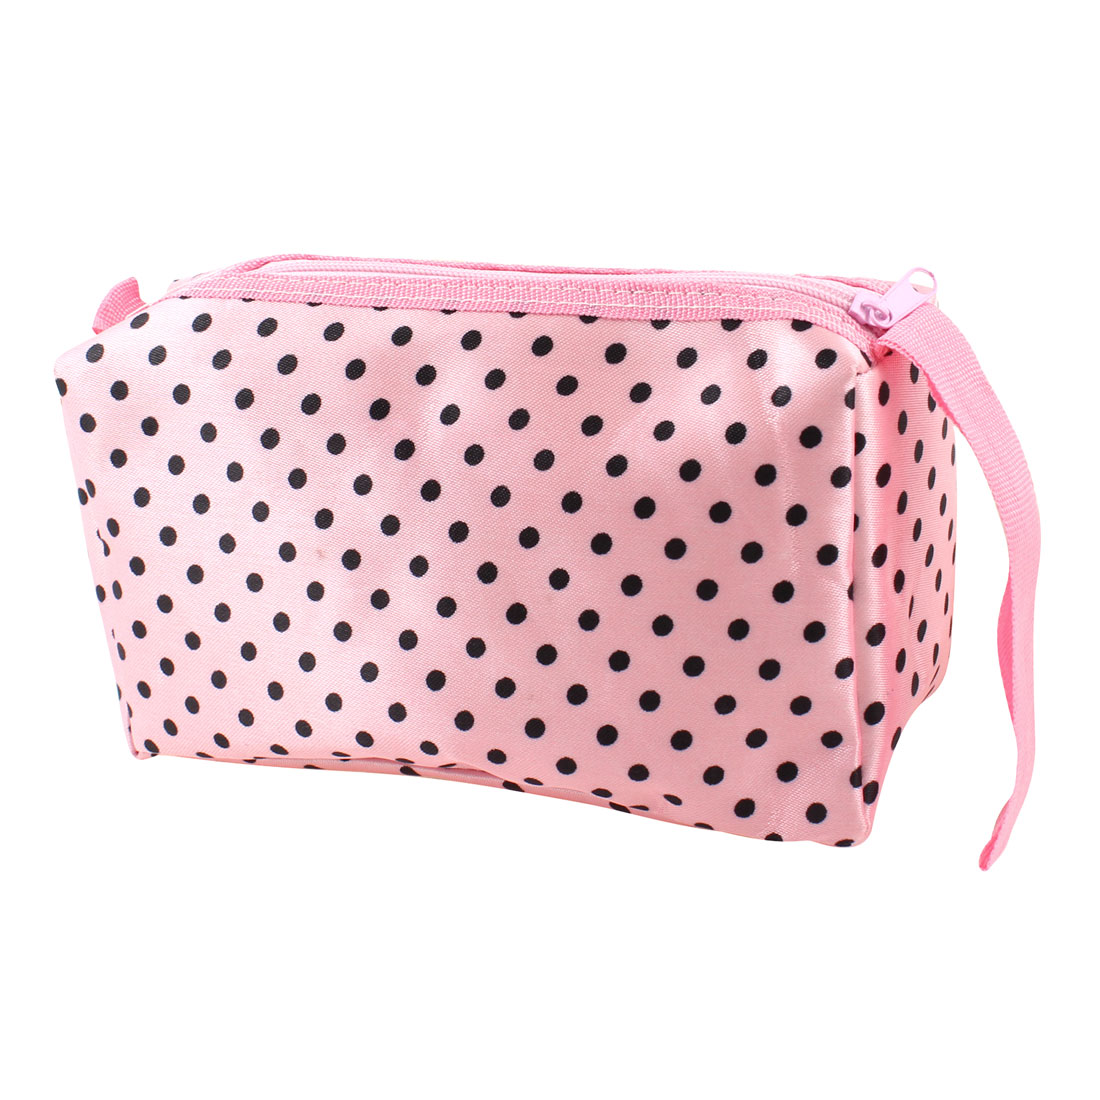 Black Dots Pattern Rectangle Pink Storage Case Cosmetic Makeup Bag for Lady